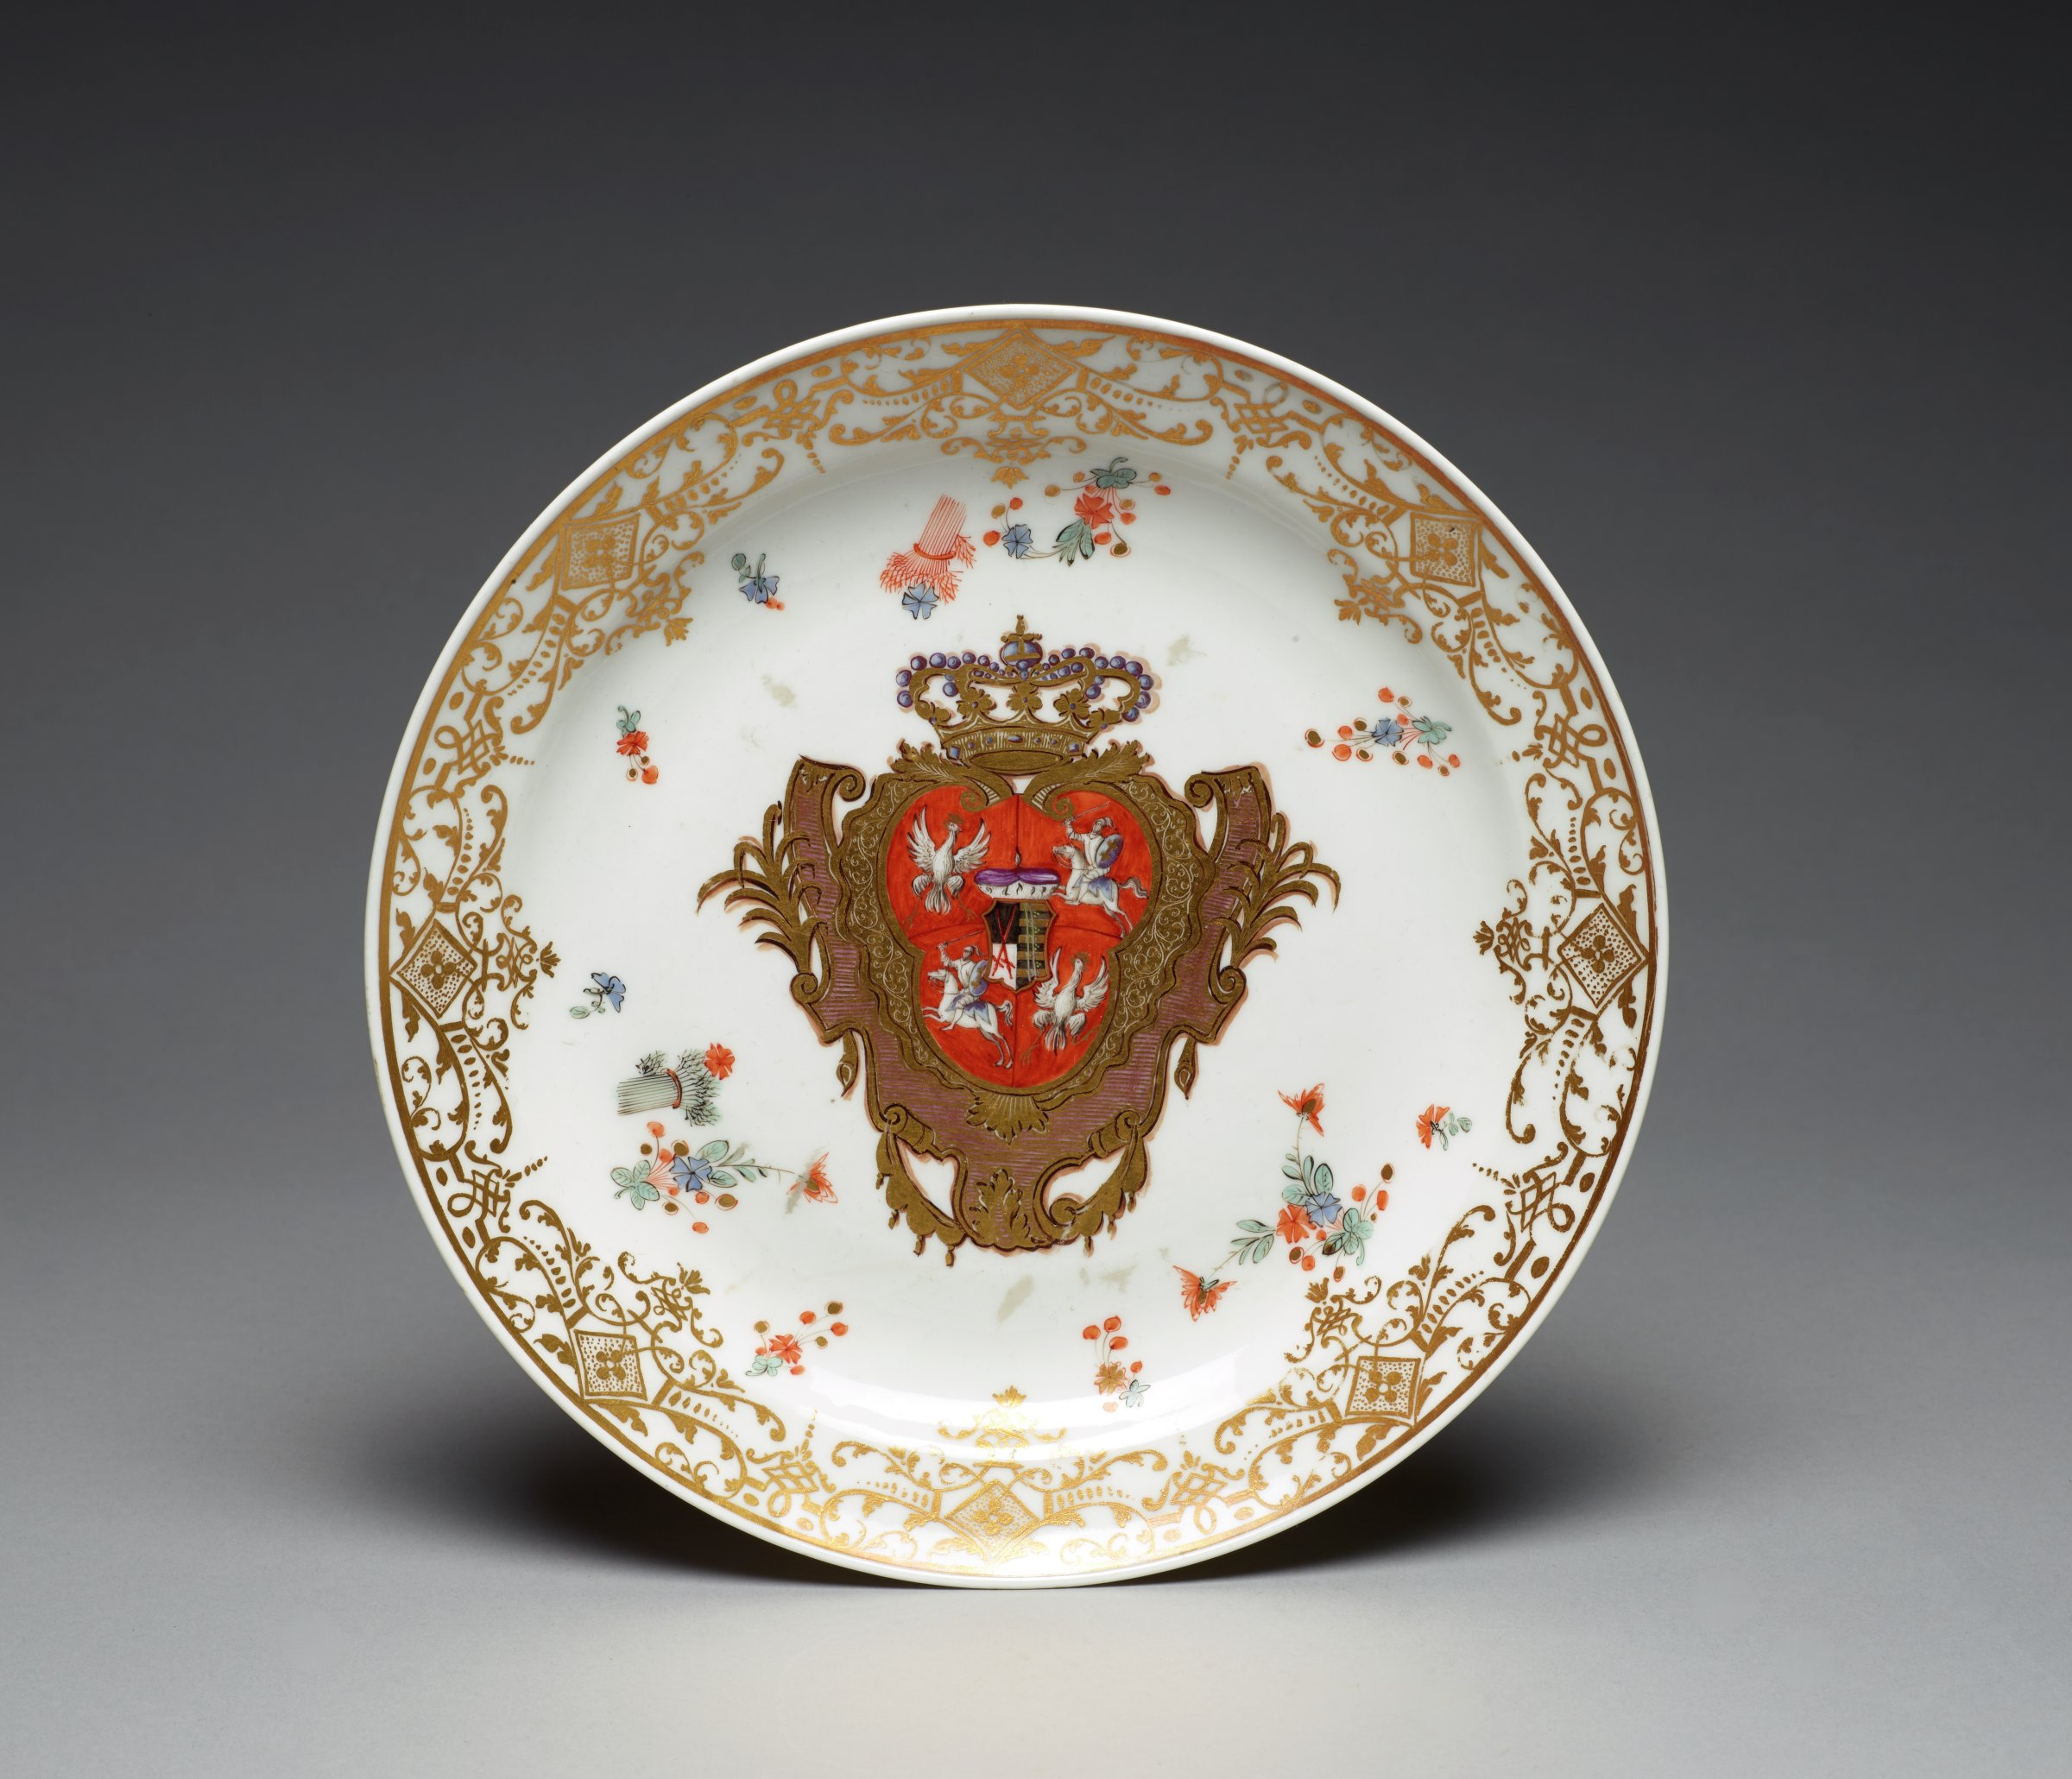 Round dinner plate of white porcelain decorated with elaborate gilt scrolls around the rim and with scattered flowers and sheafs of wheat reminiscent of the Kakiemon style in the well, in the center decorated with the quartered Arms of Saxony and Poland centered with the small crest of the Saxon Electorate showing crossed swords, within a crowned escutcheon.